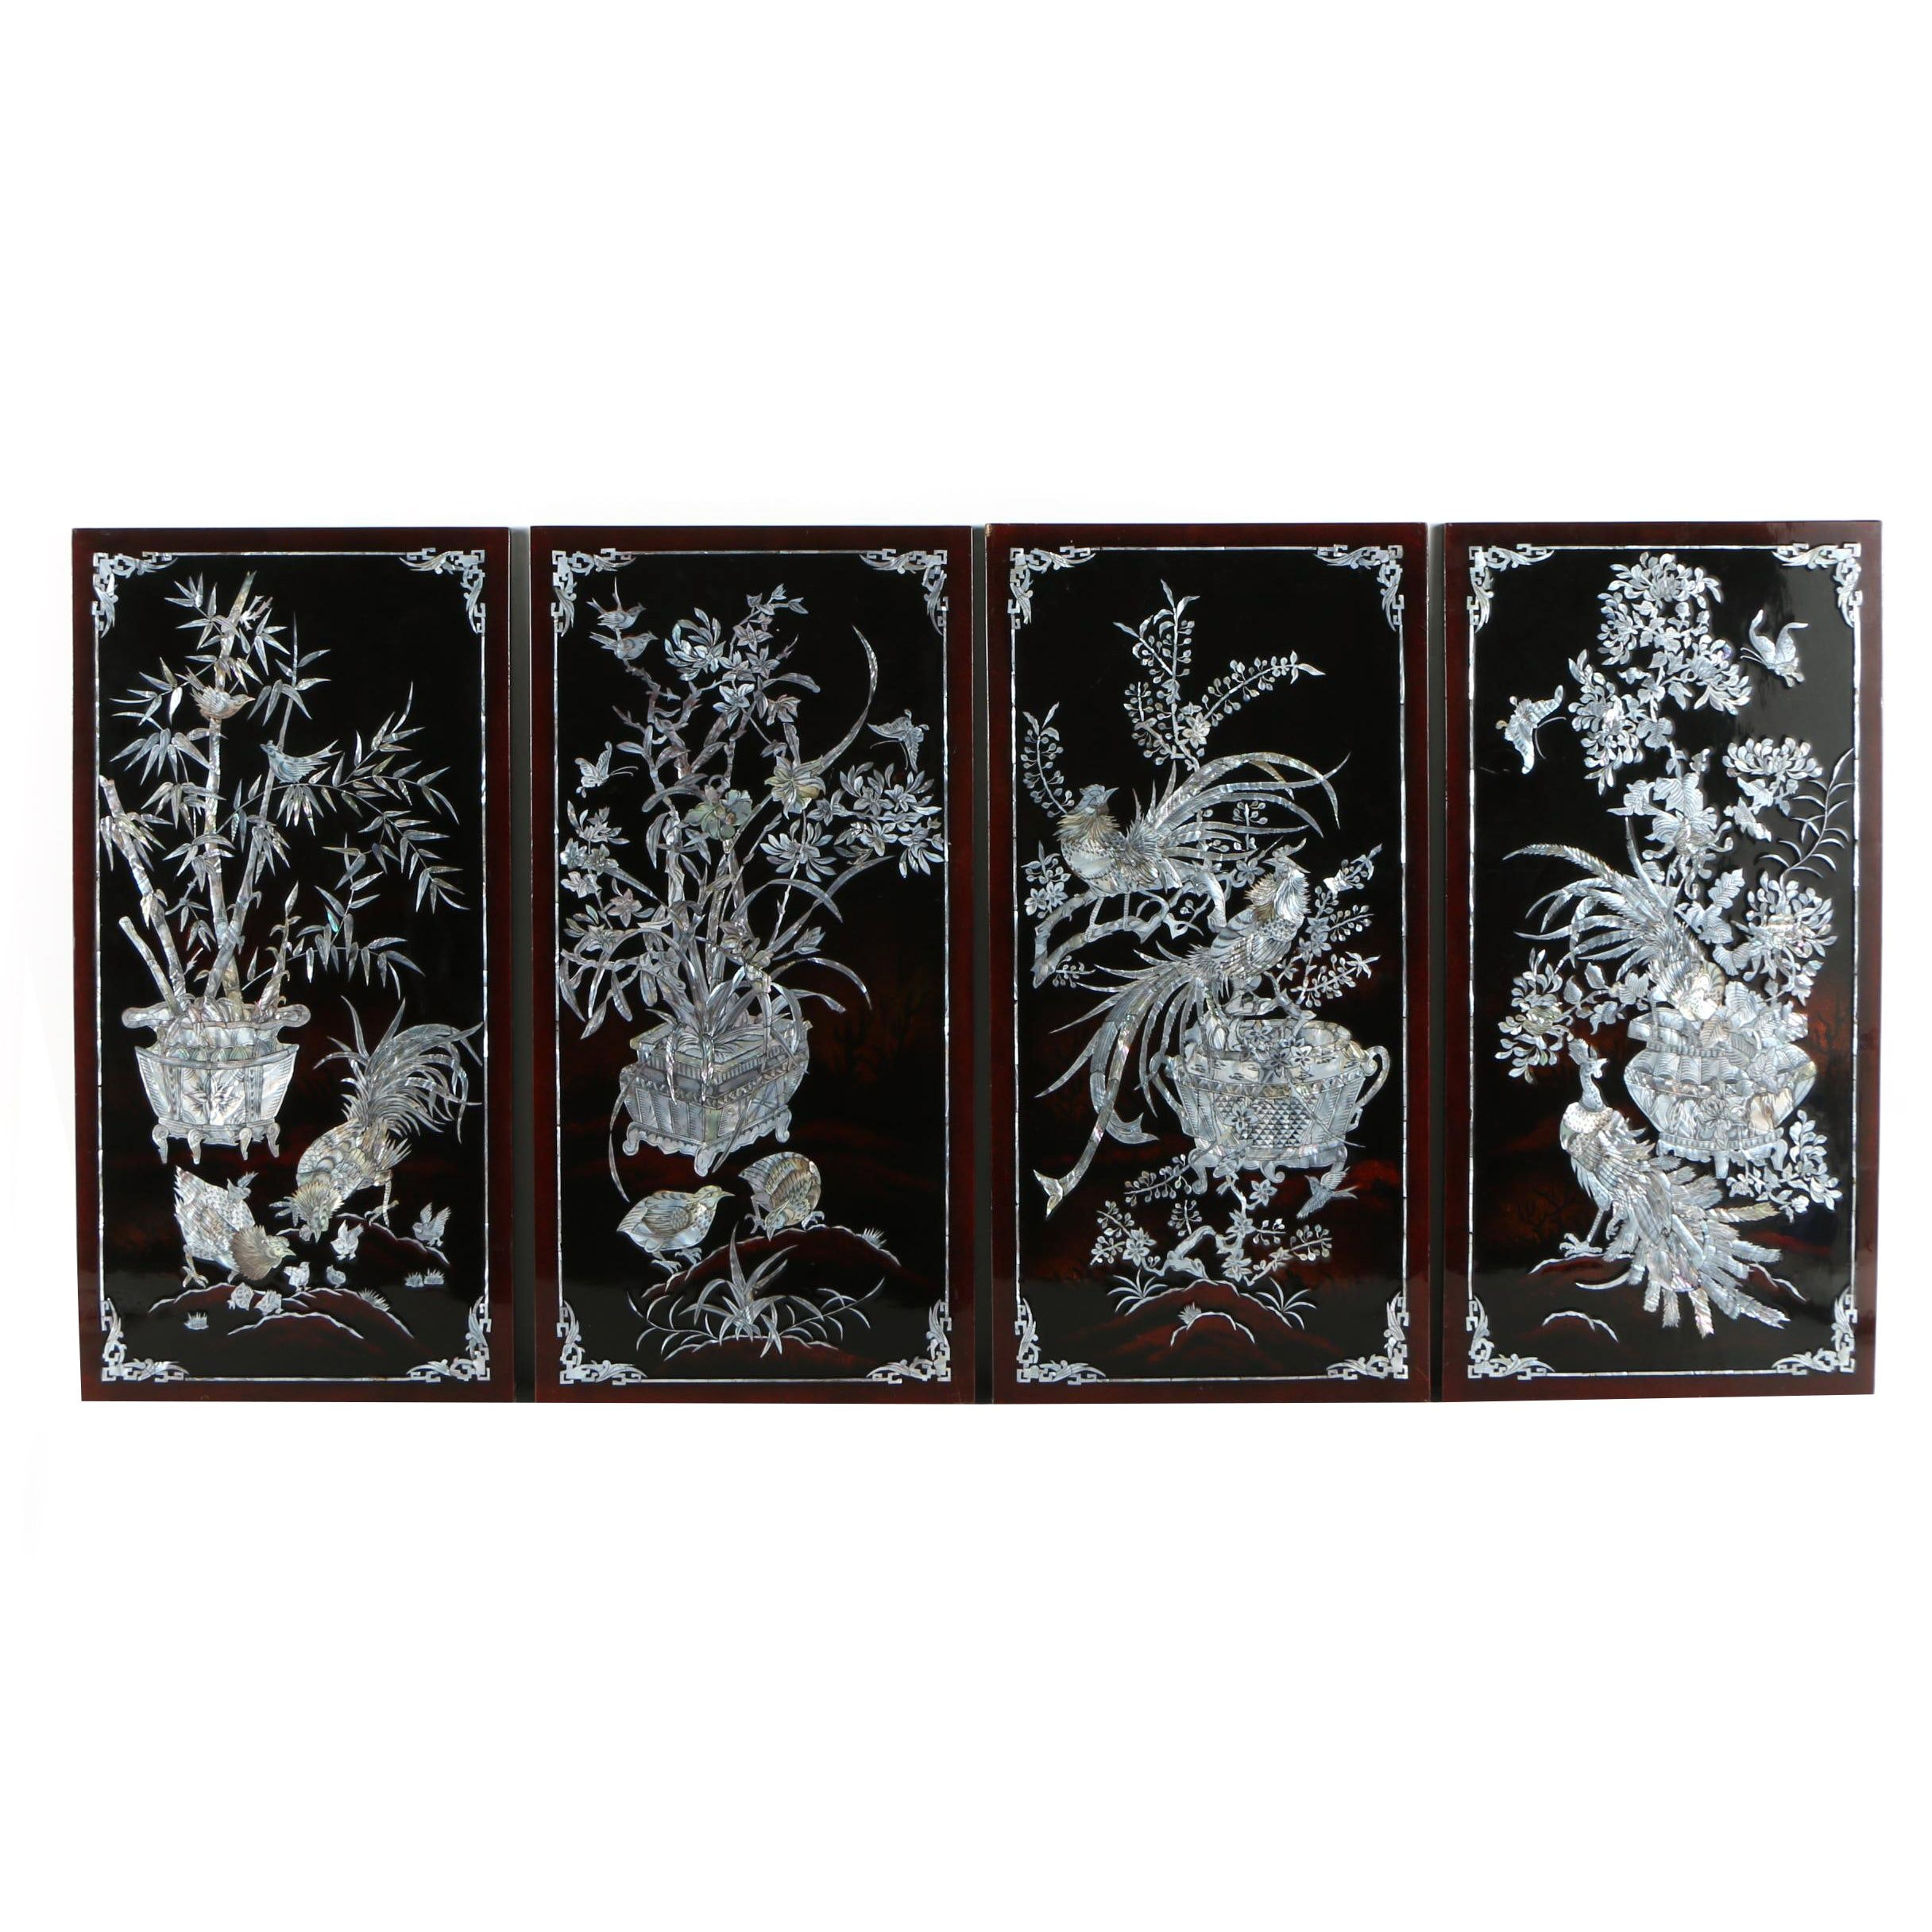 Chinese Inlaid Abalone Lacquered Wood Panels